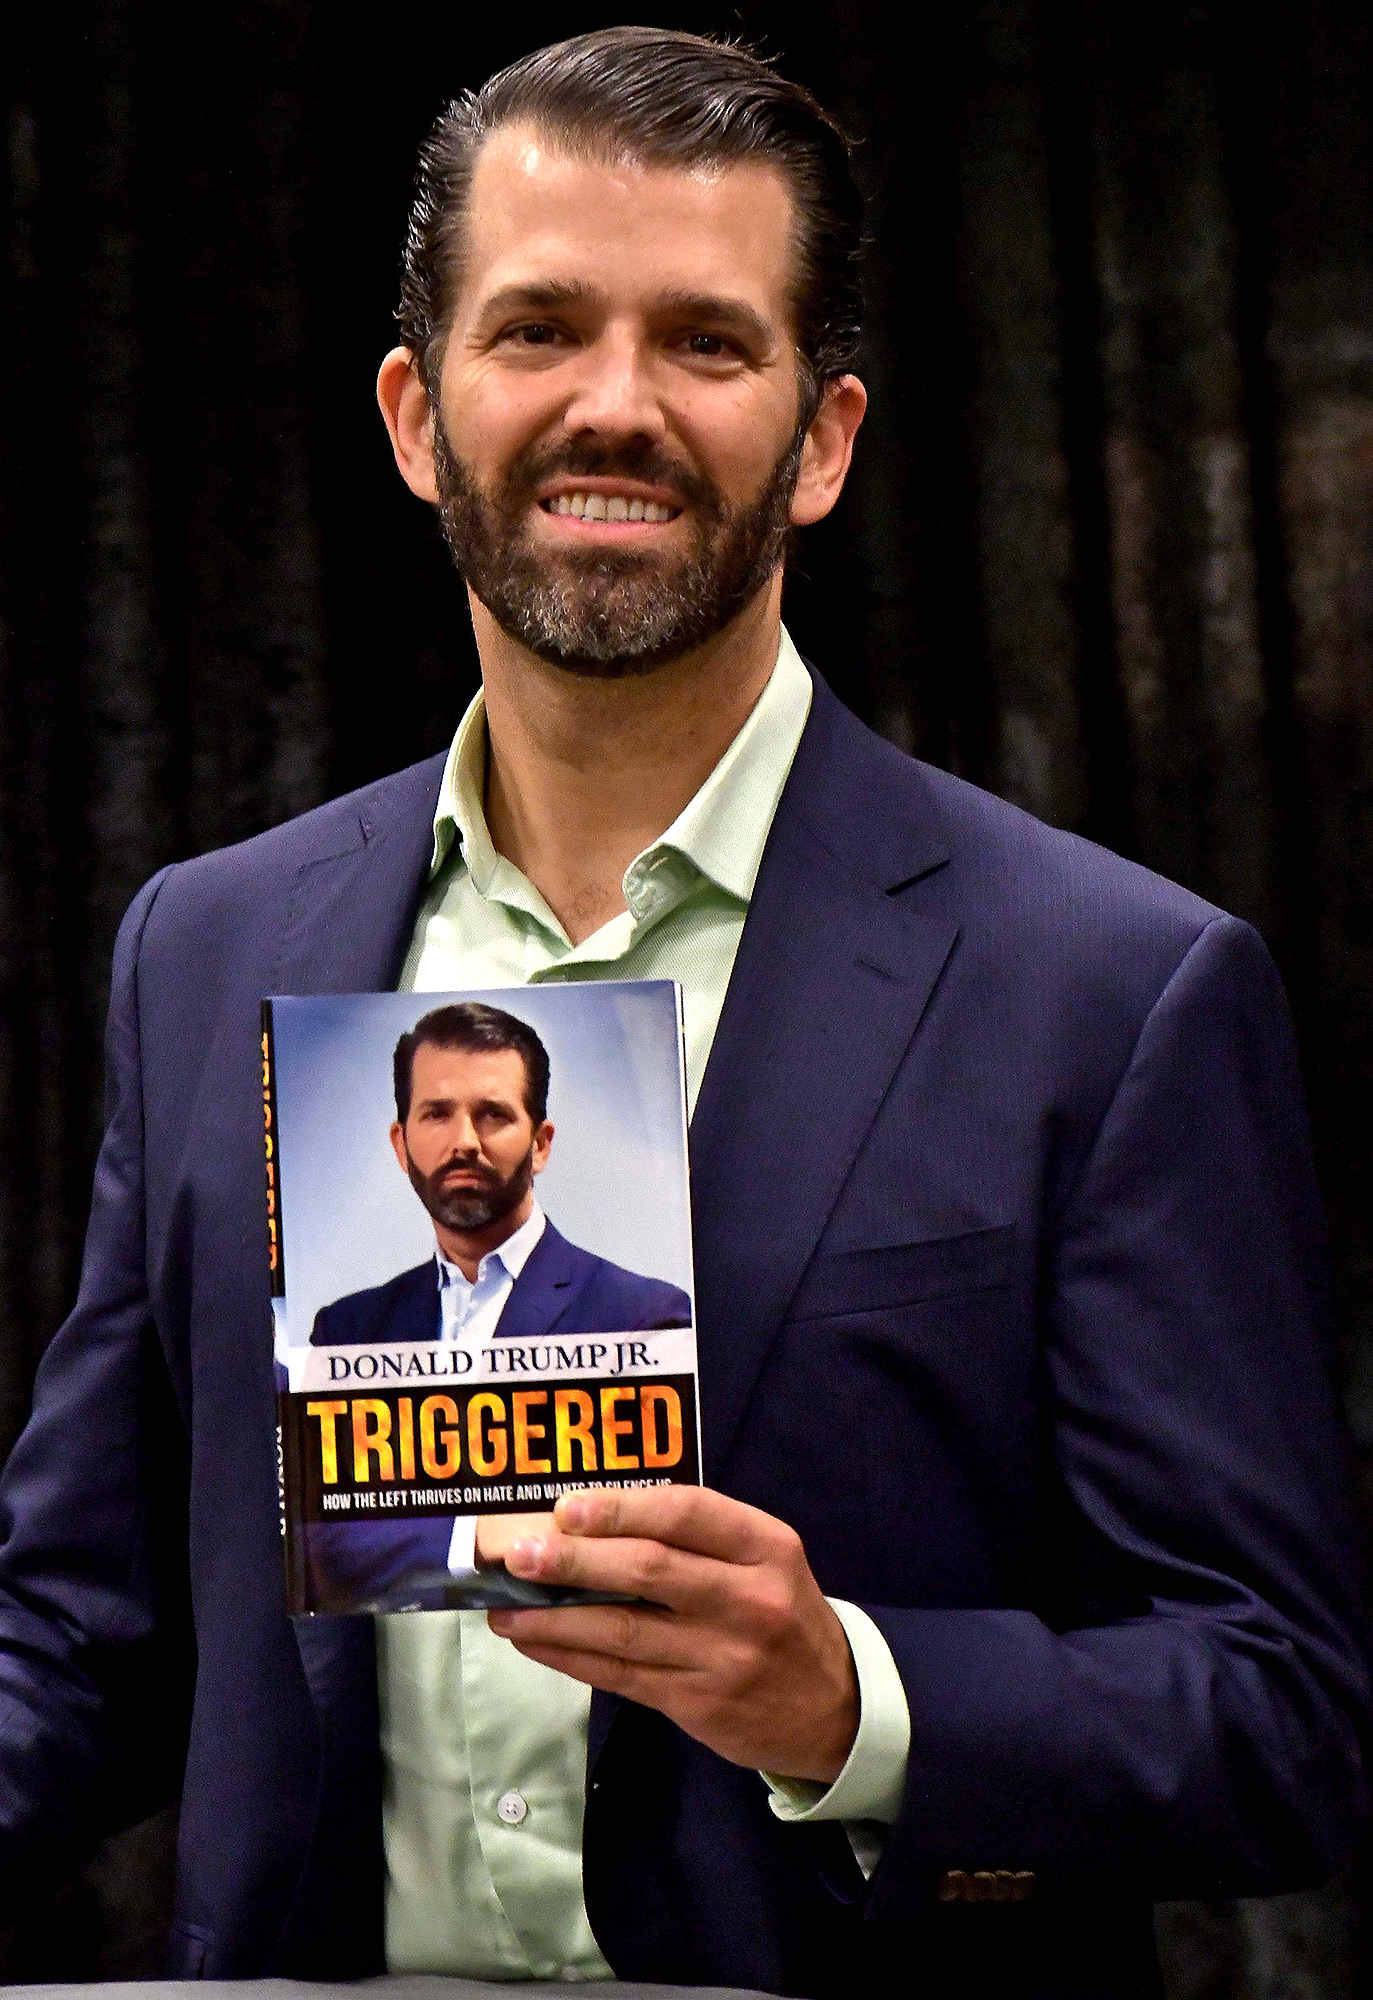 Donald Trump Jnr. with a copy of his book Donald Trump Jnr. 'Triggered'